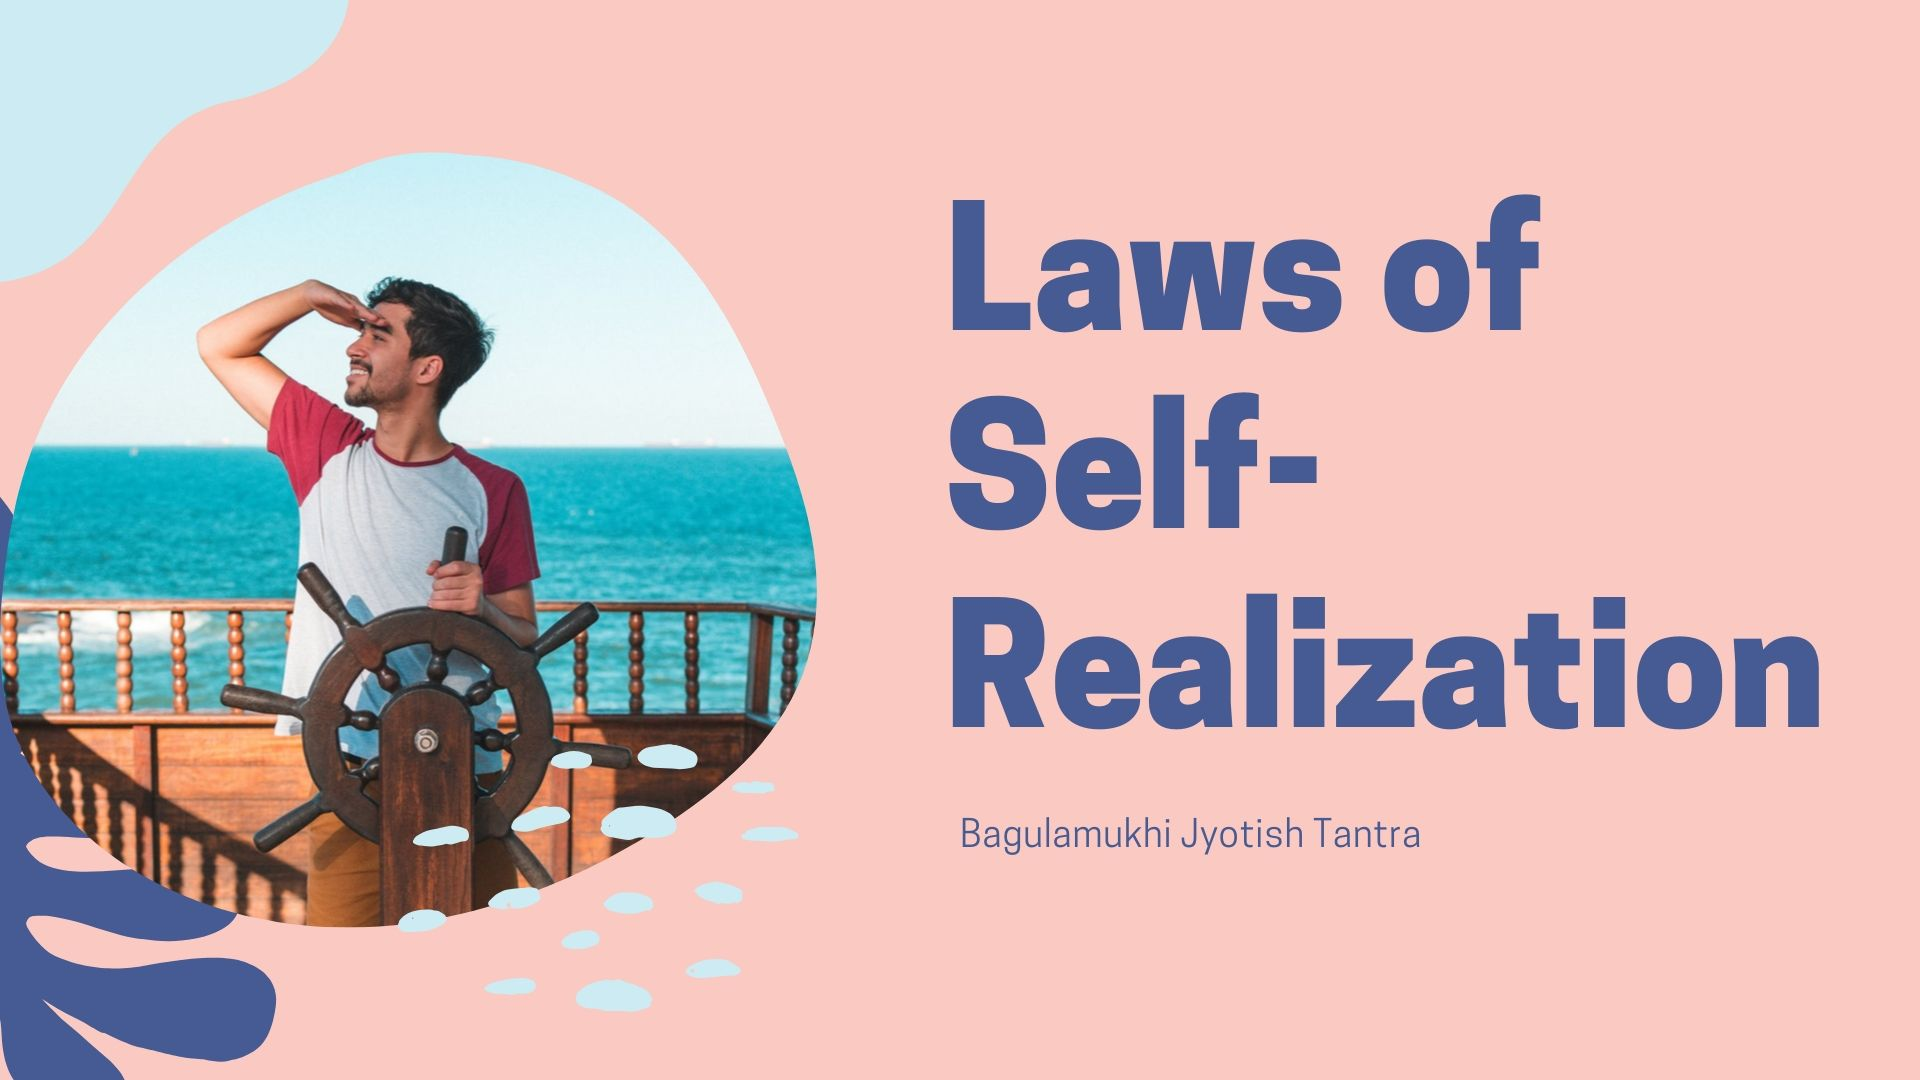 Laws of Self-Realization